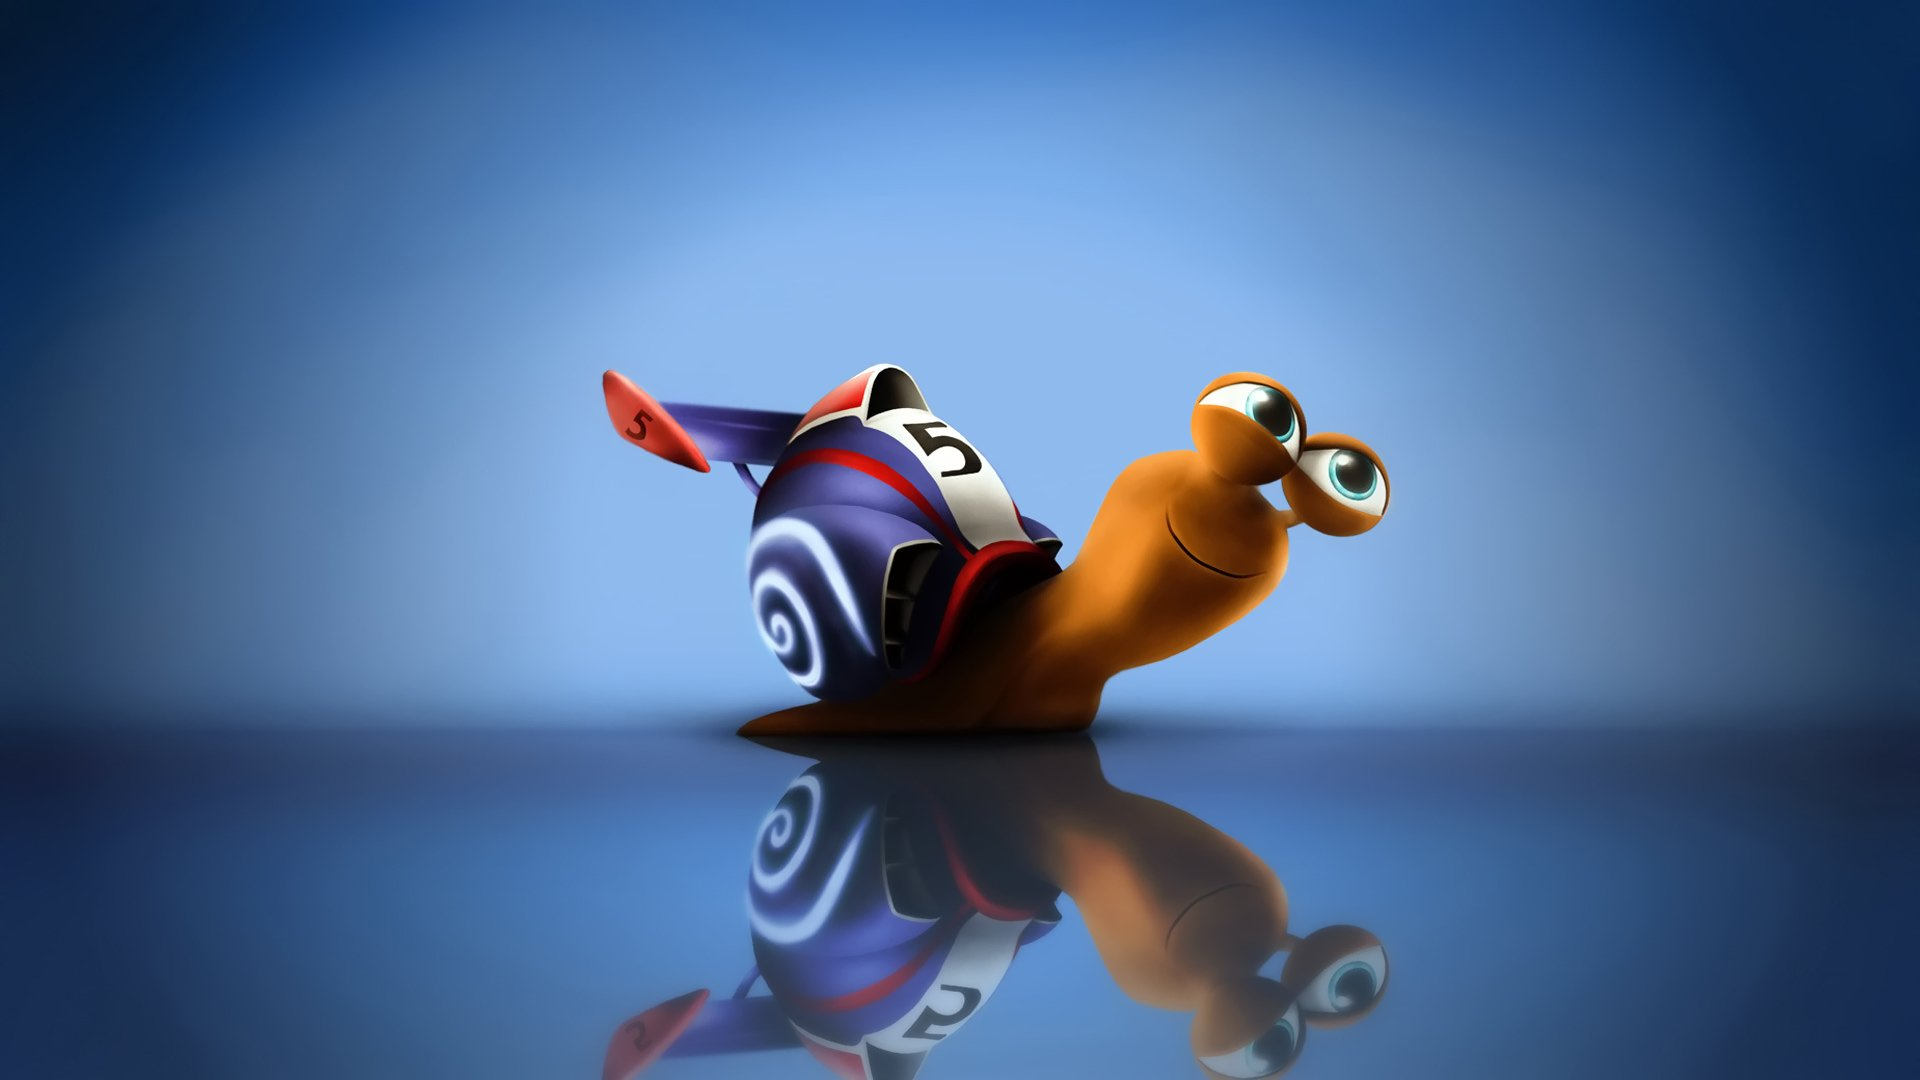 Turbo HD Wallpaper Background Image